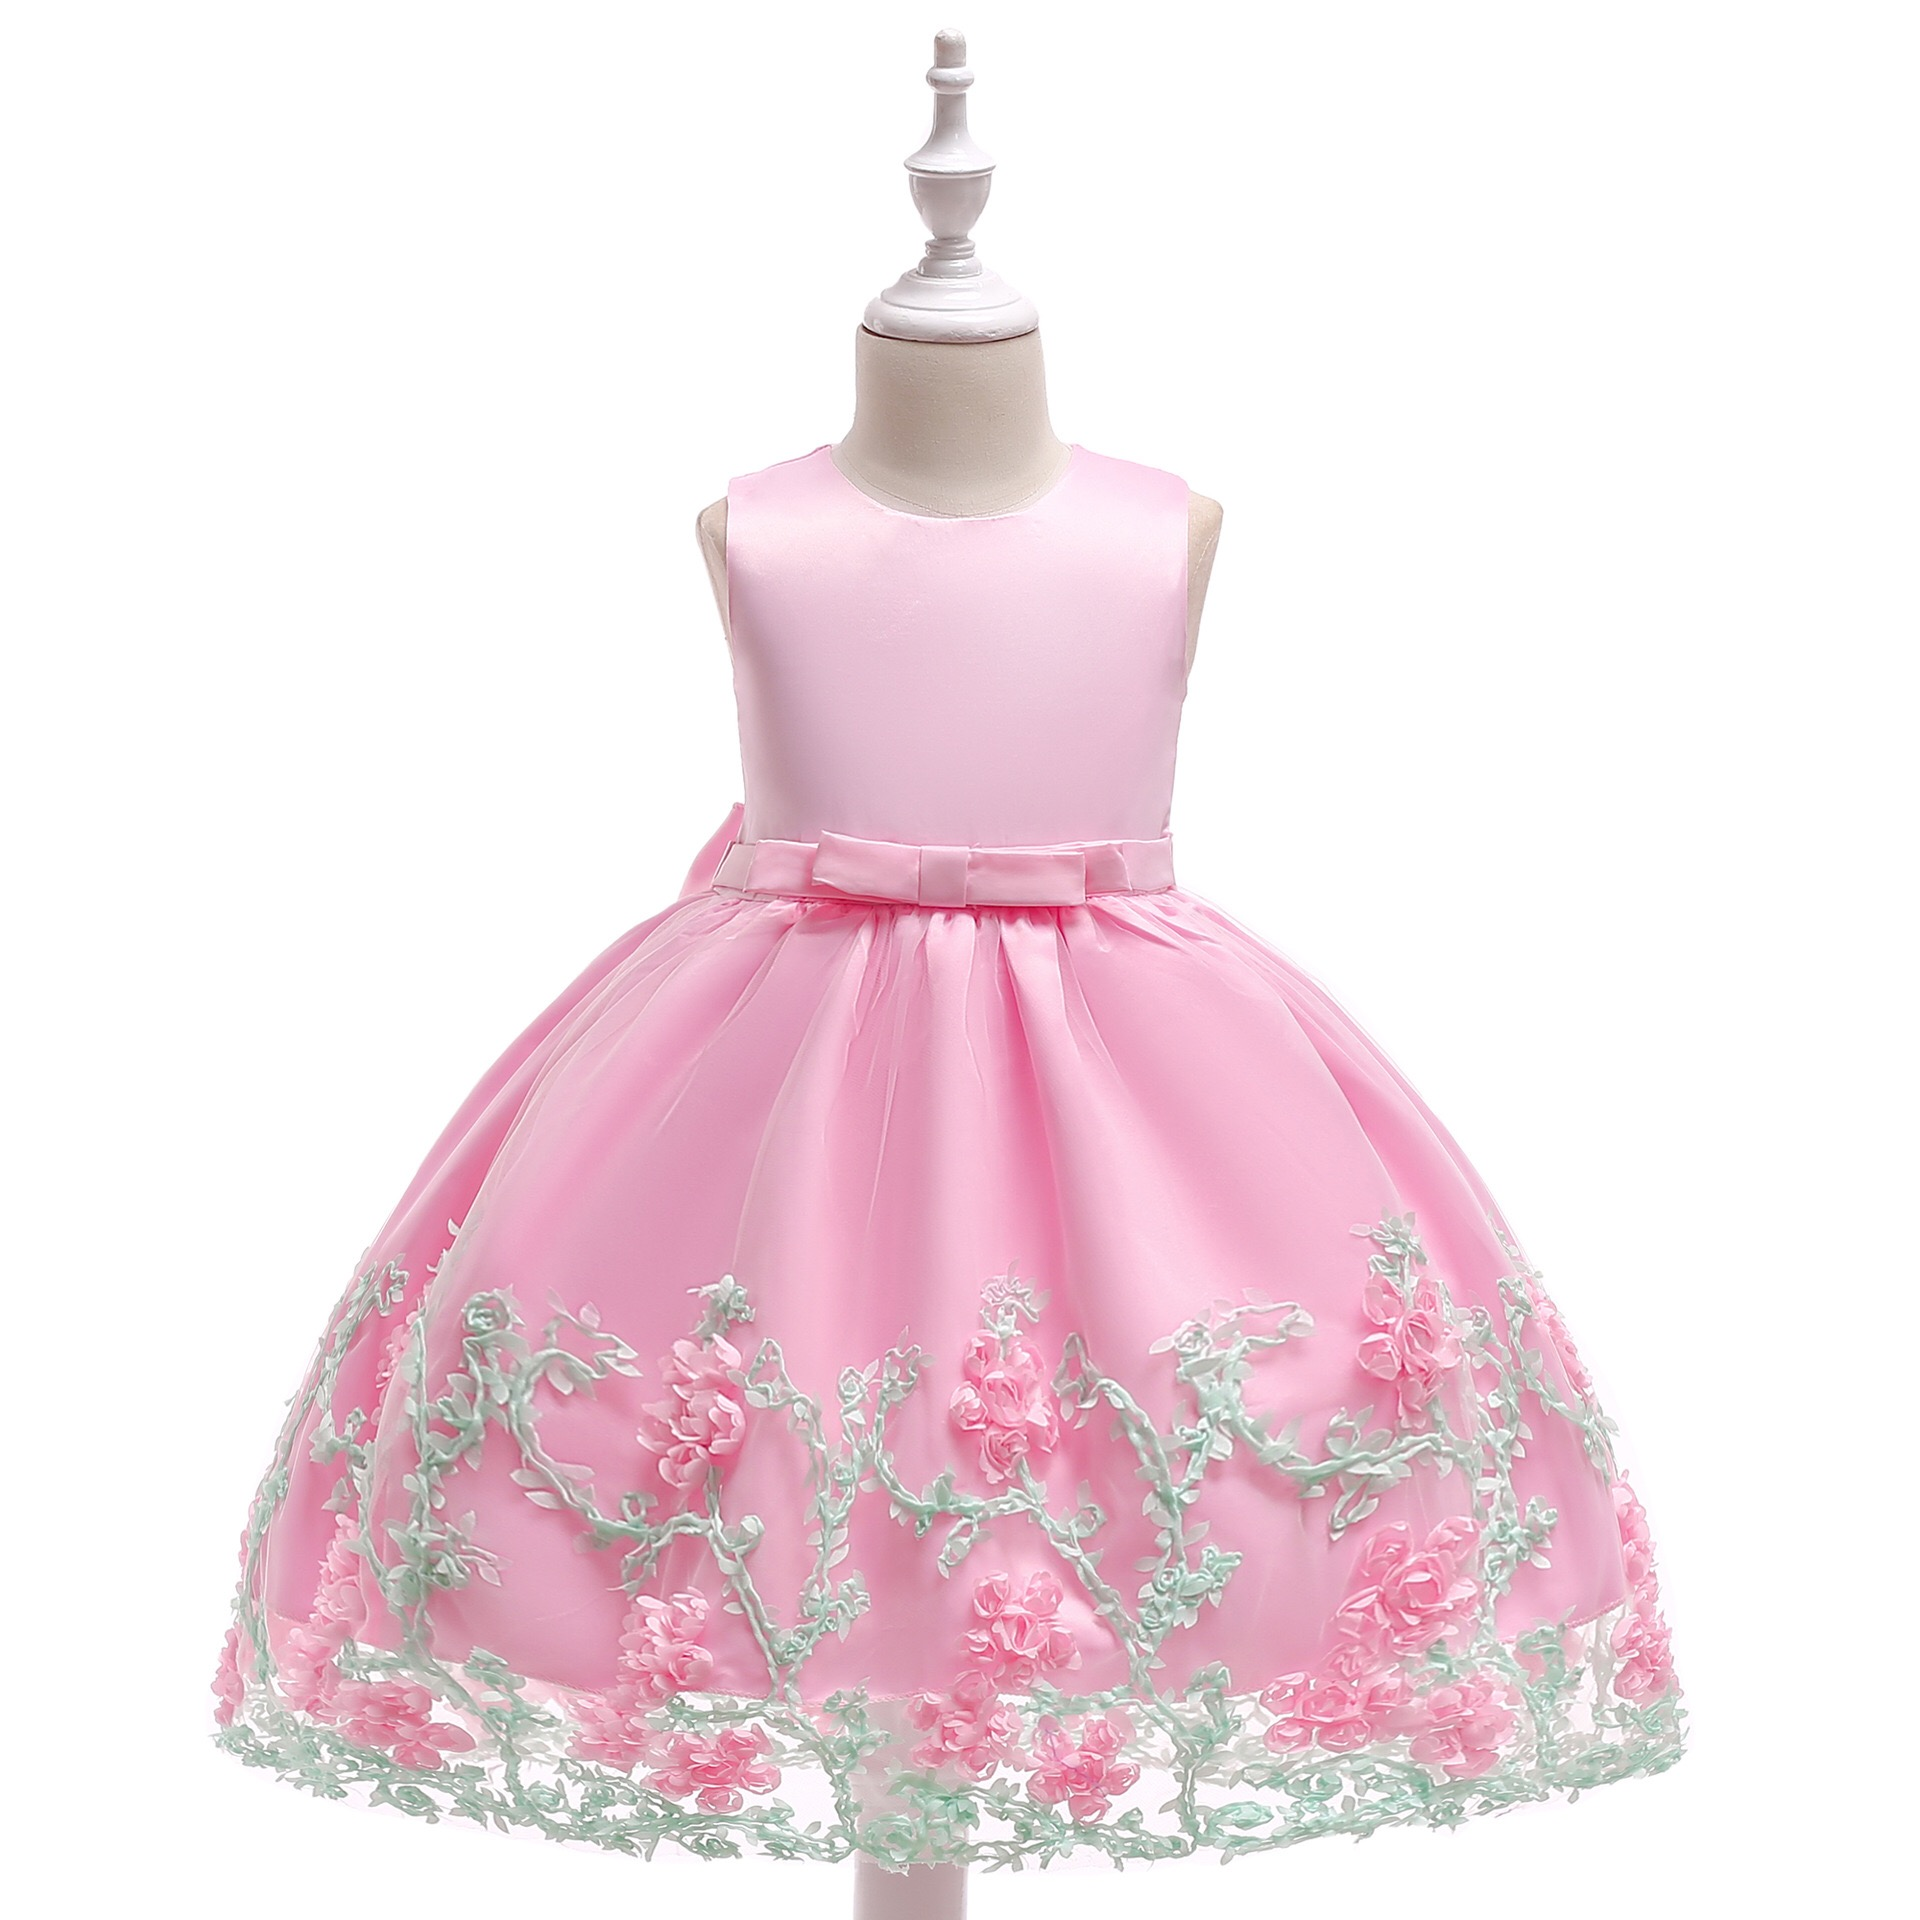 wholesale kids clothing dress children clothes girls baby girl dresses for party